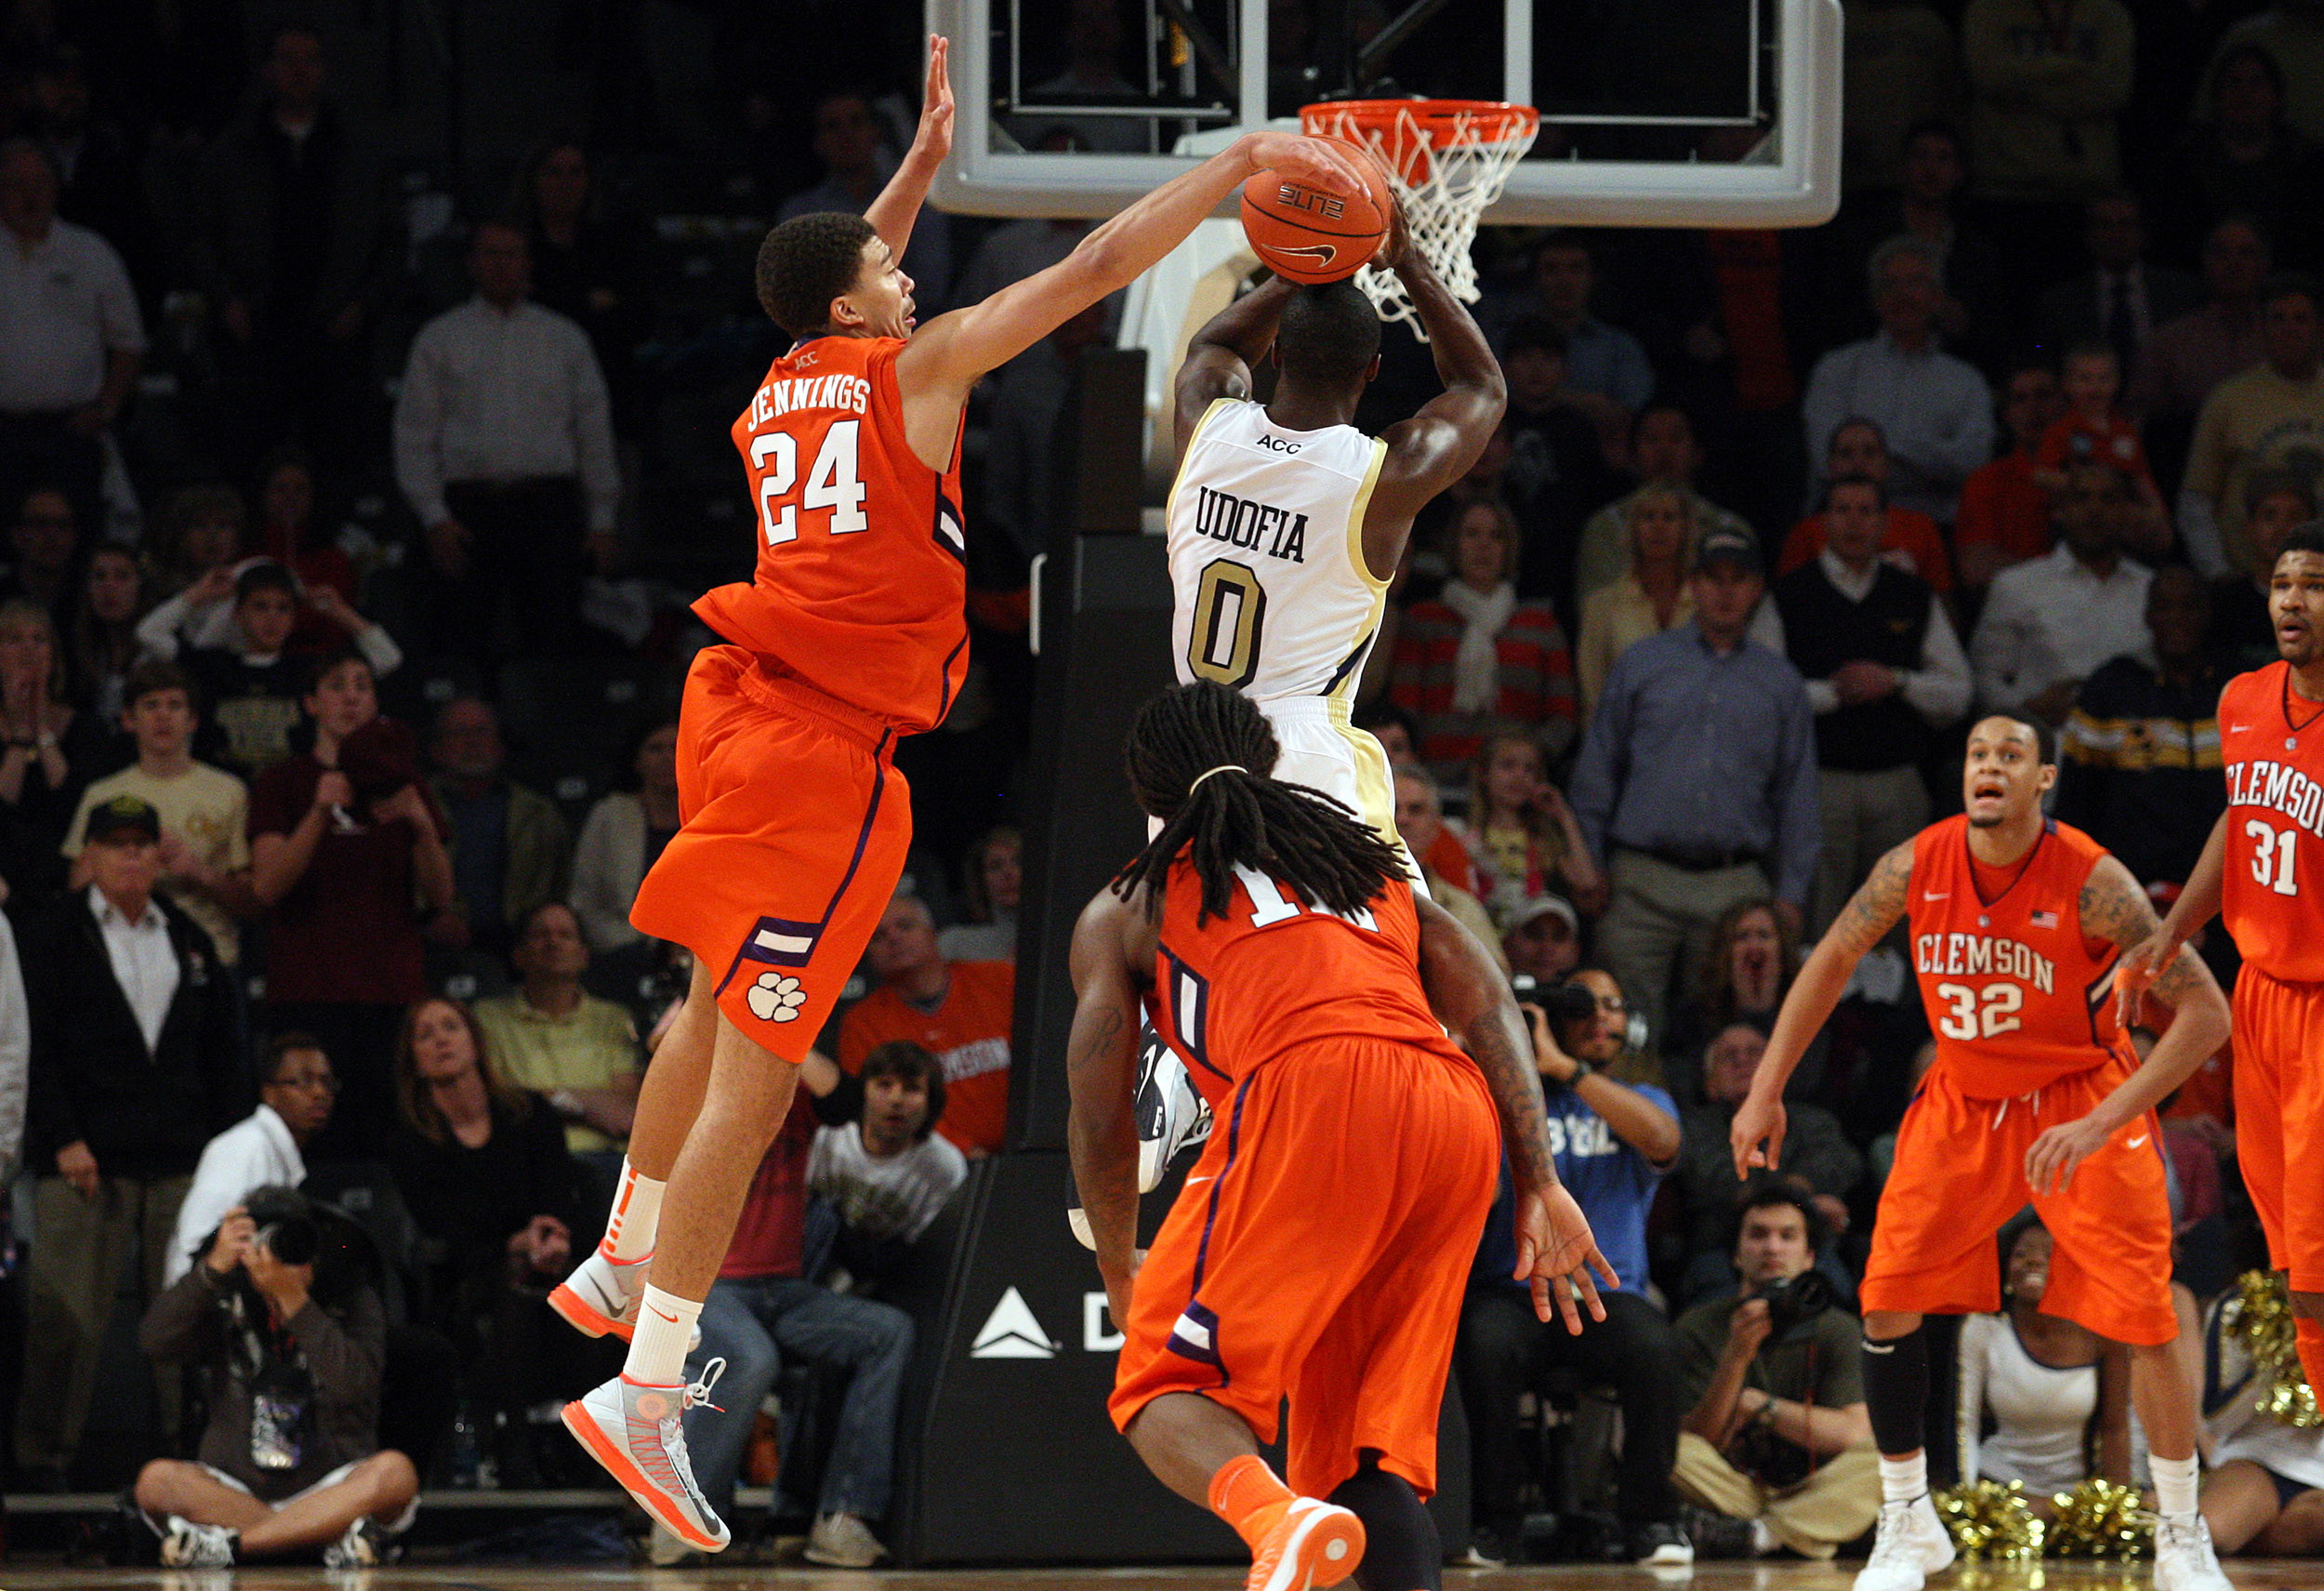 Exclusive: Jennings Earns Redemption in Tigers' First ACC Road Win